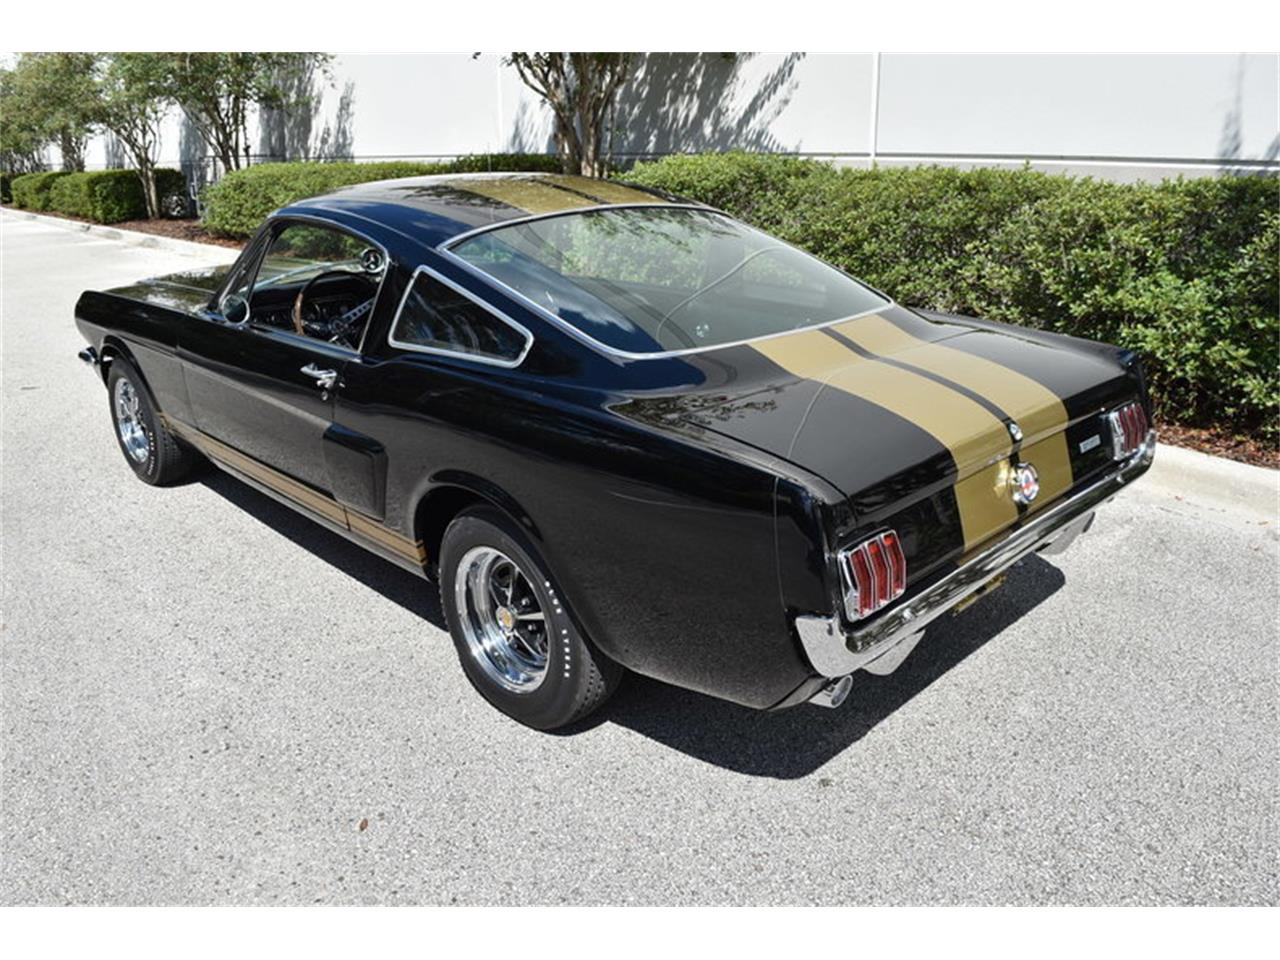 Large Picture of '66 GT located in Zephyrhills Florida Auction Vehicle Offered by SunCoast Auto Auction - ONHH